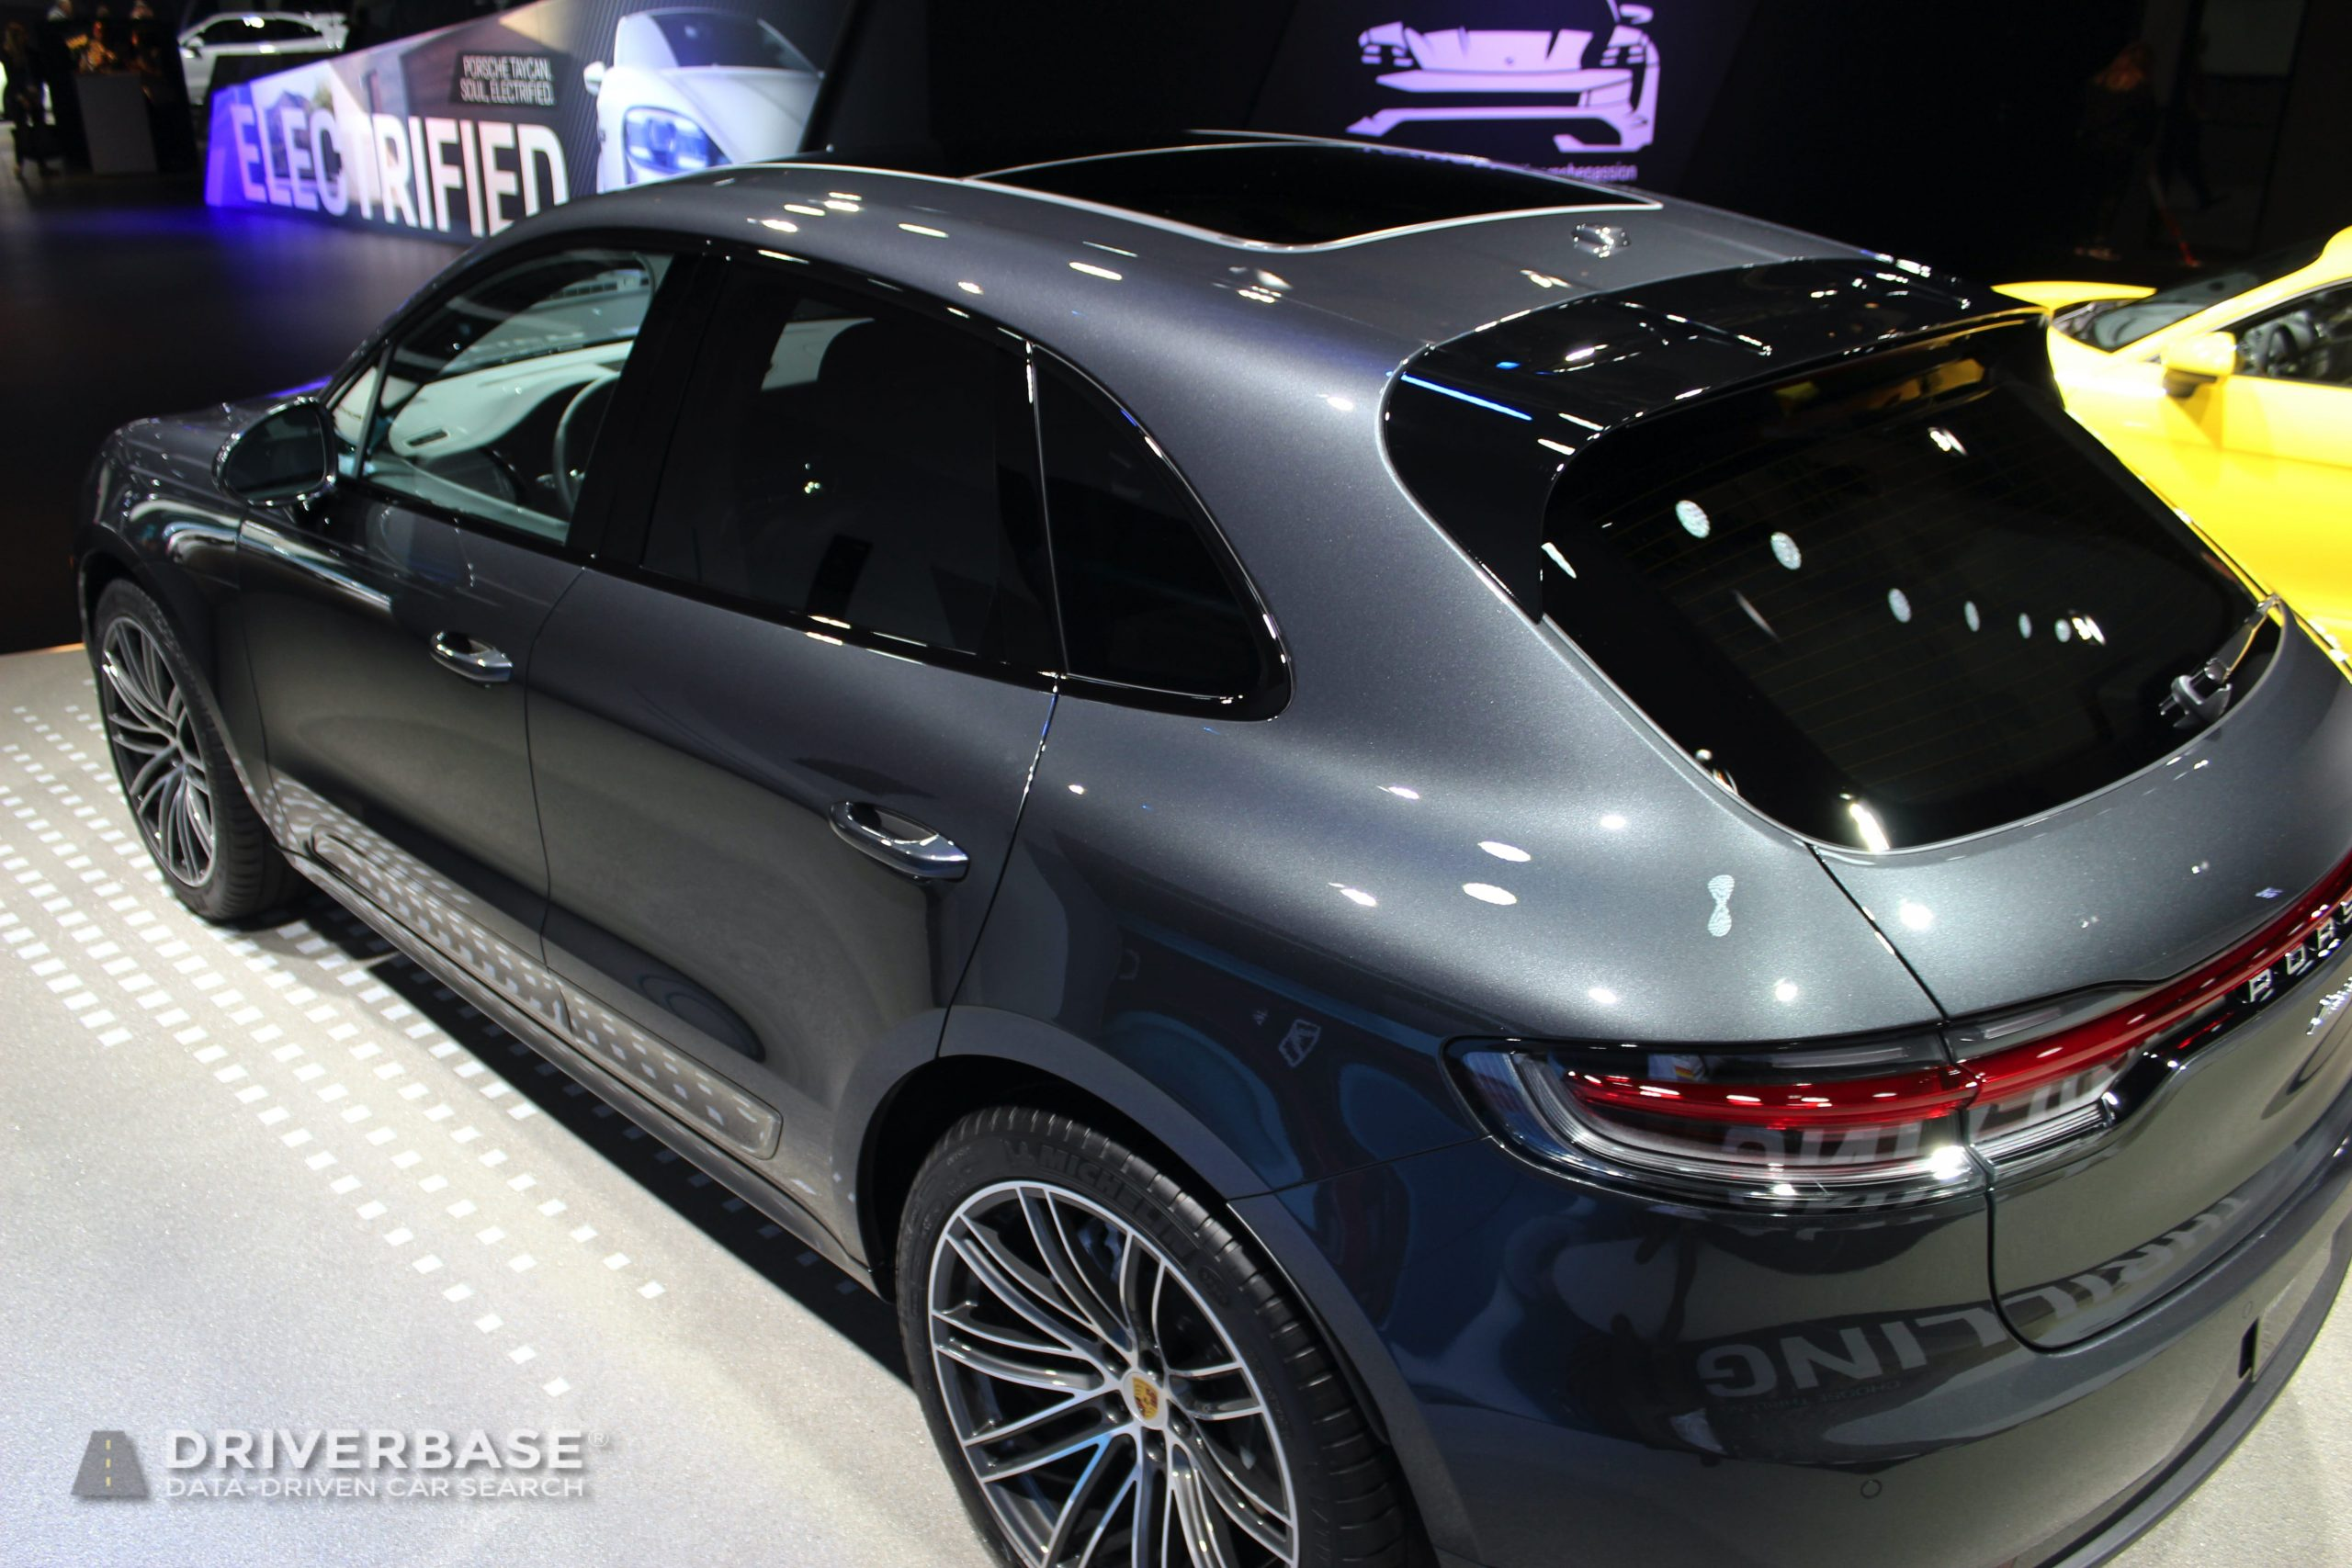 2020 Porsche Macan Turbo at the 2019 Los Angeles Auto Show